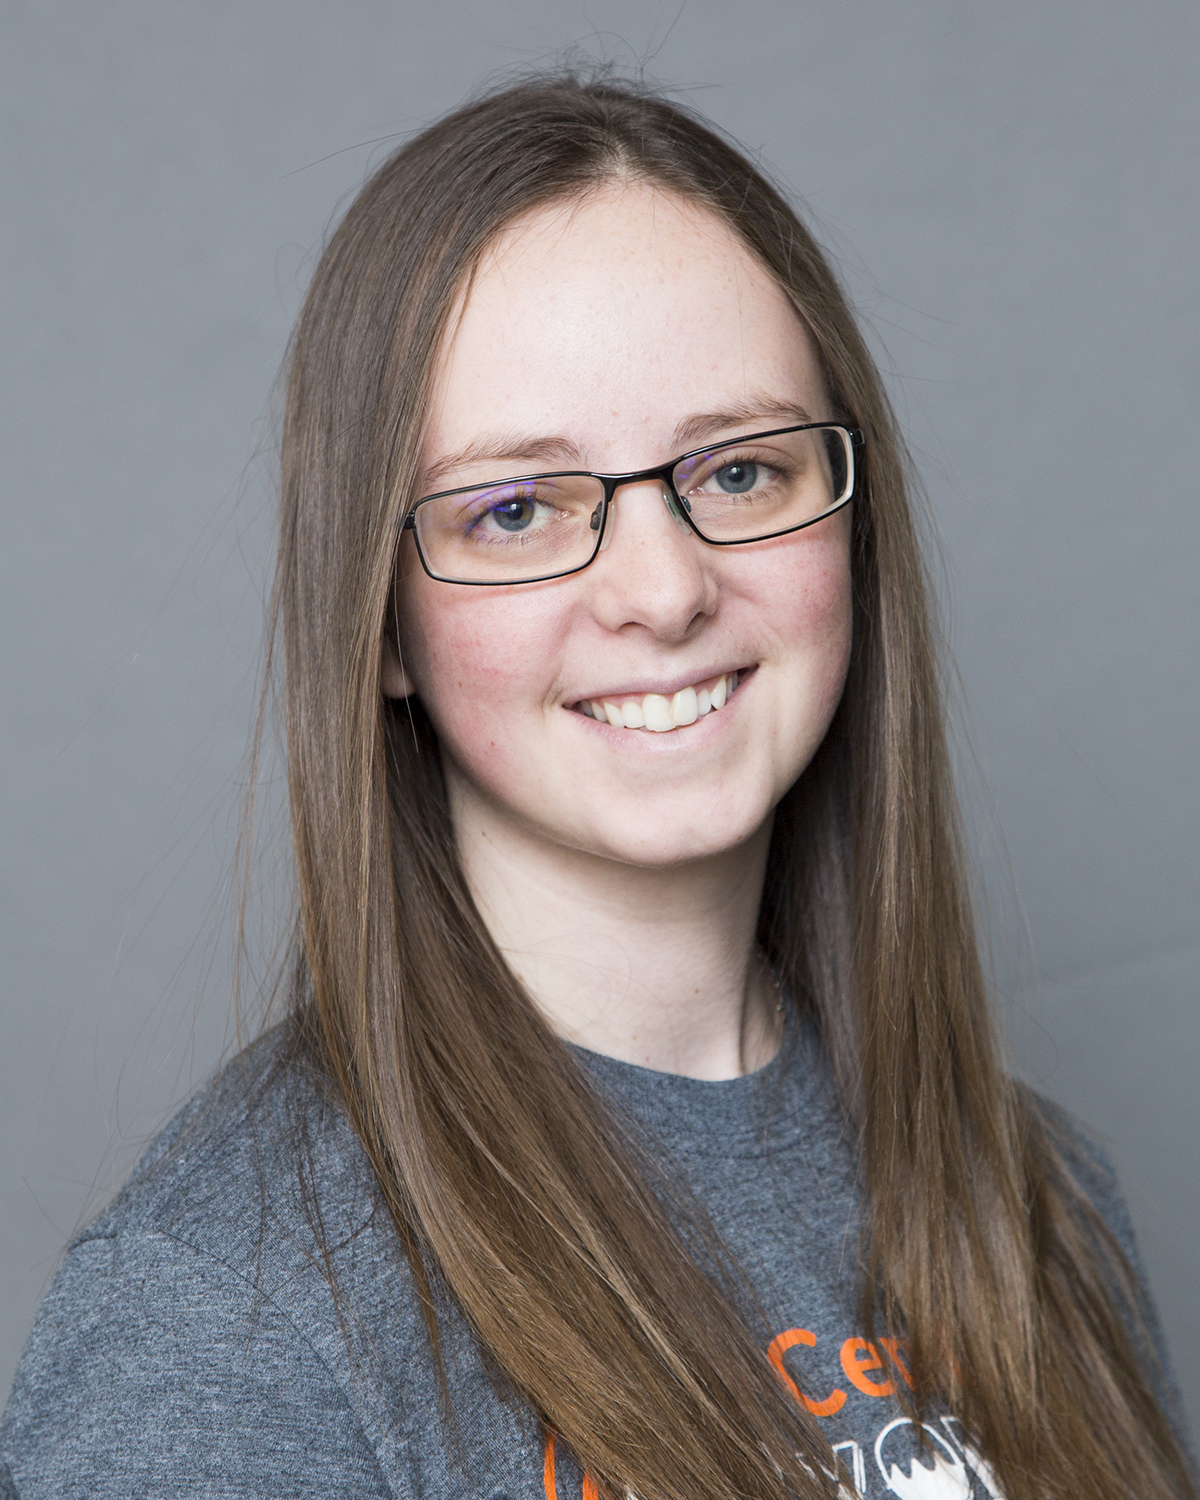 photo of CWC student Amy Chidester